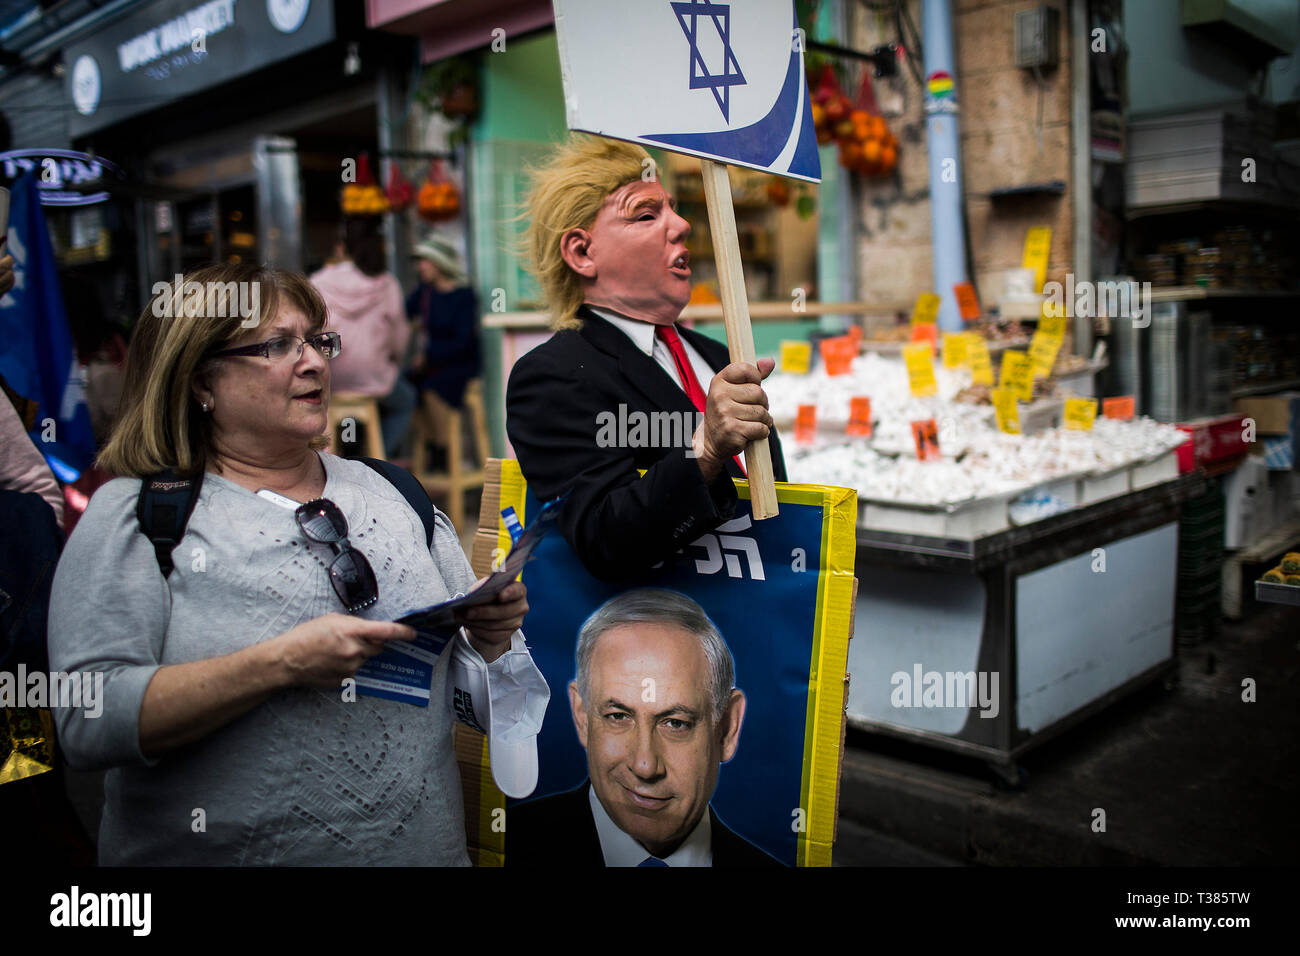 Jerusalem, Middle East. 7th Apr, 2019. A supporter of the Likud party, is seen dressed as US President Donald Trump, as he walks in the Mahane Yehuda Market with a picture of Israeli Prime Minister Benjamin Netanyahu, ahead of the Israeli general elections that is scheduled to take place on 09 April. Credit: Ilia Yefimovich/dpa/Alamy Live News - Stock Image